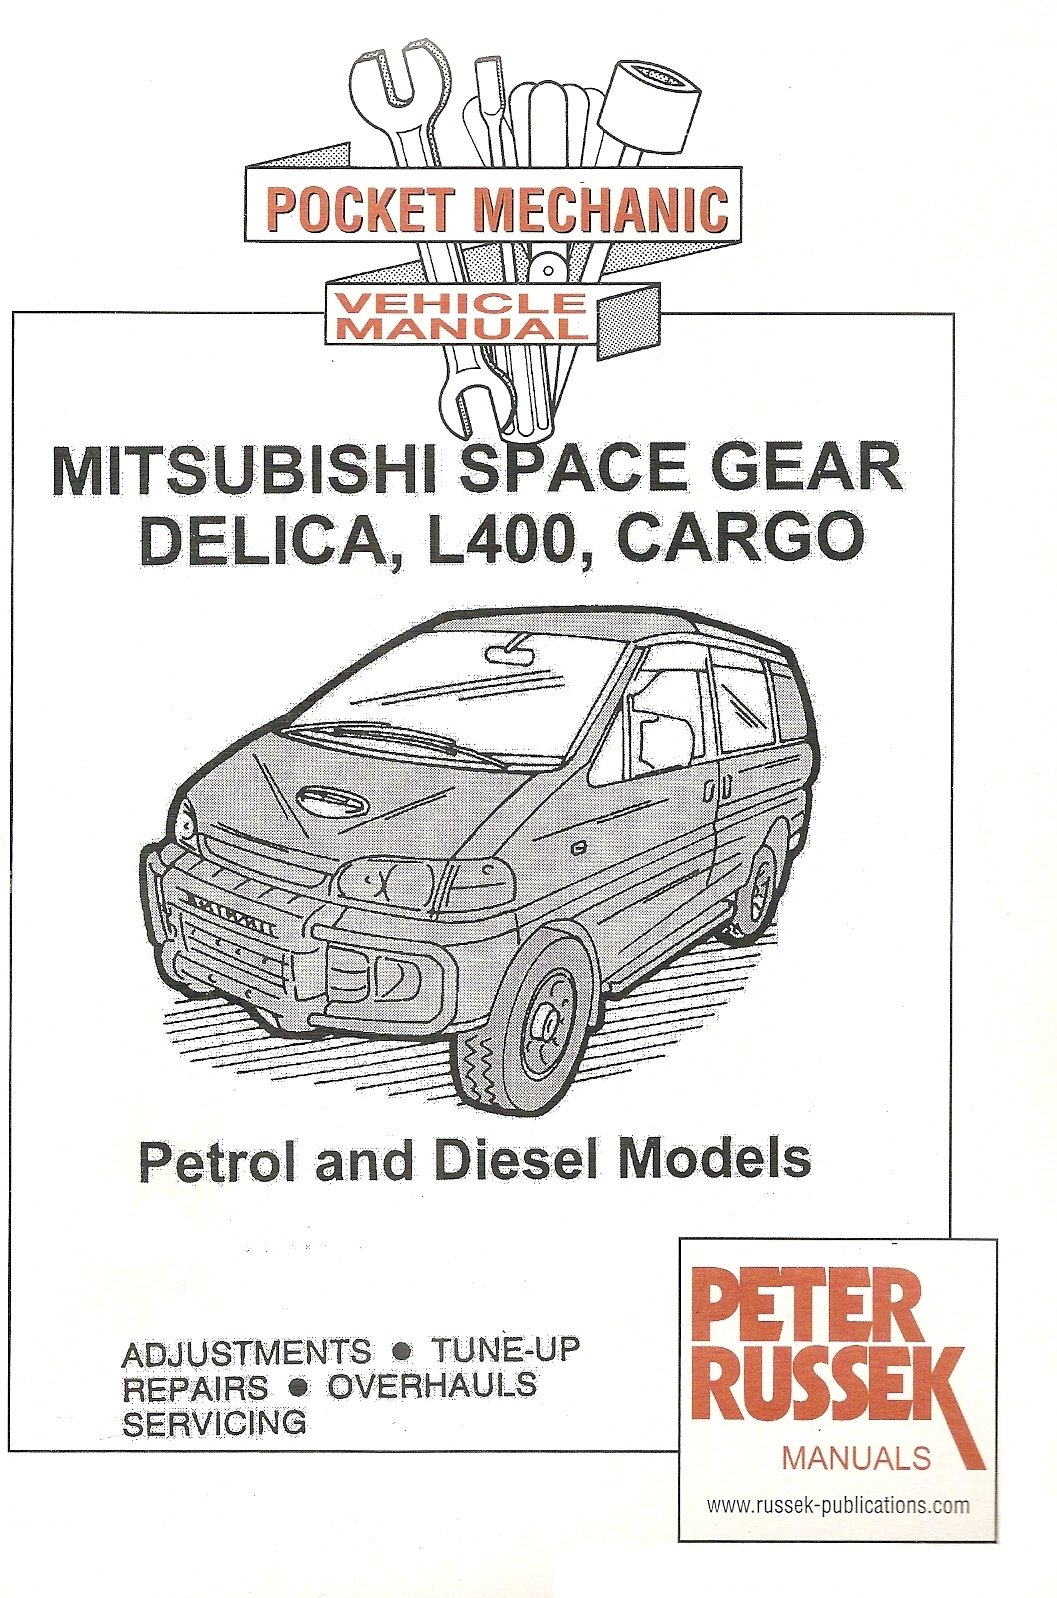 Owners Manual For 2003 Mitsubishi Galant Good Owner Guide Website Engine Diagram Delica L400 Wiring Diagrams Download 47 Type Of Oil